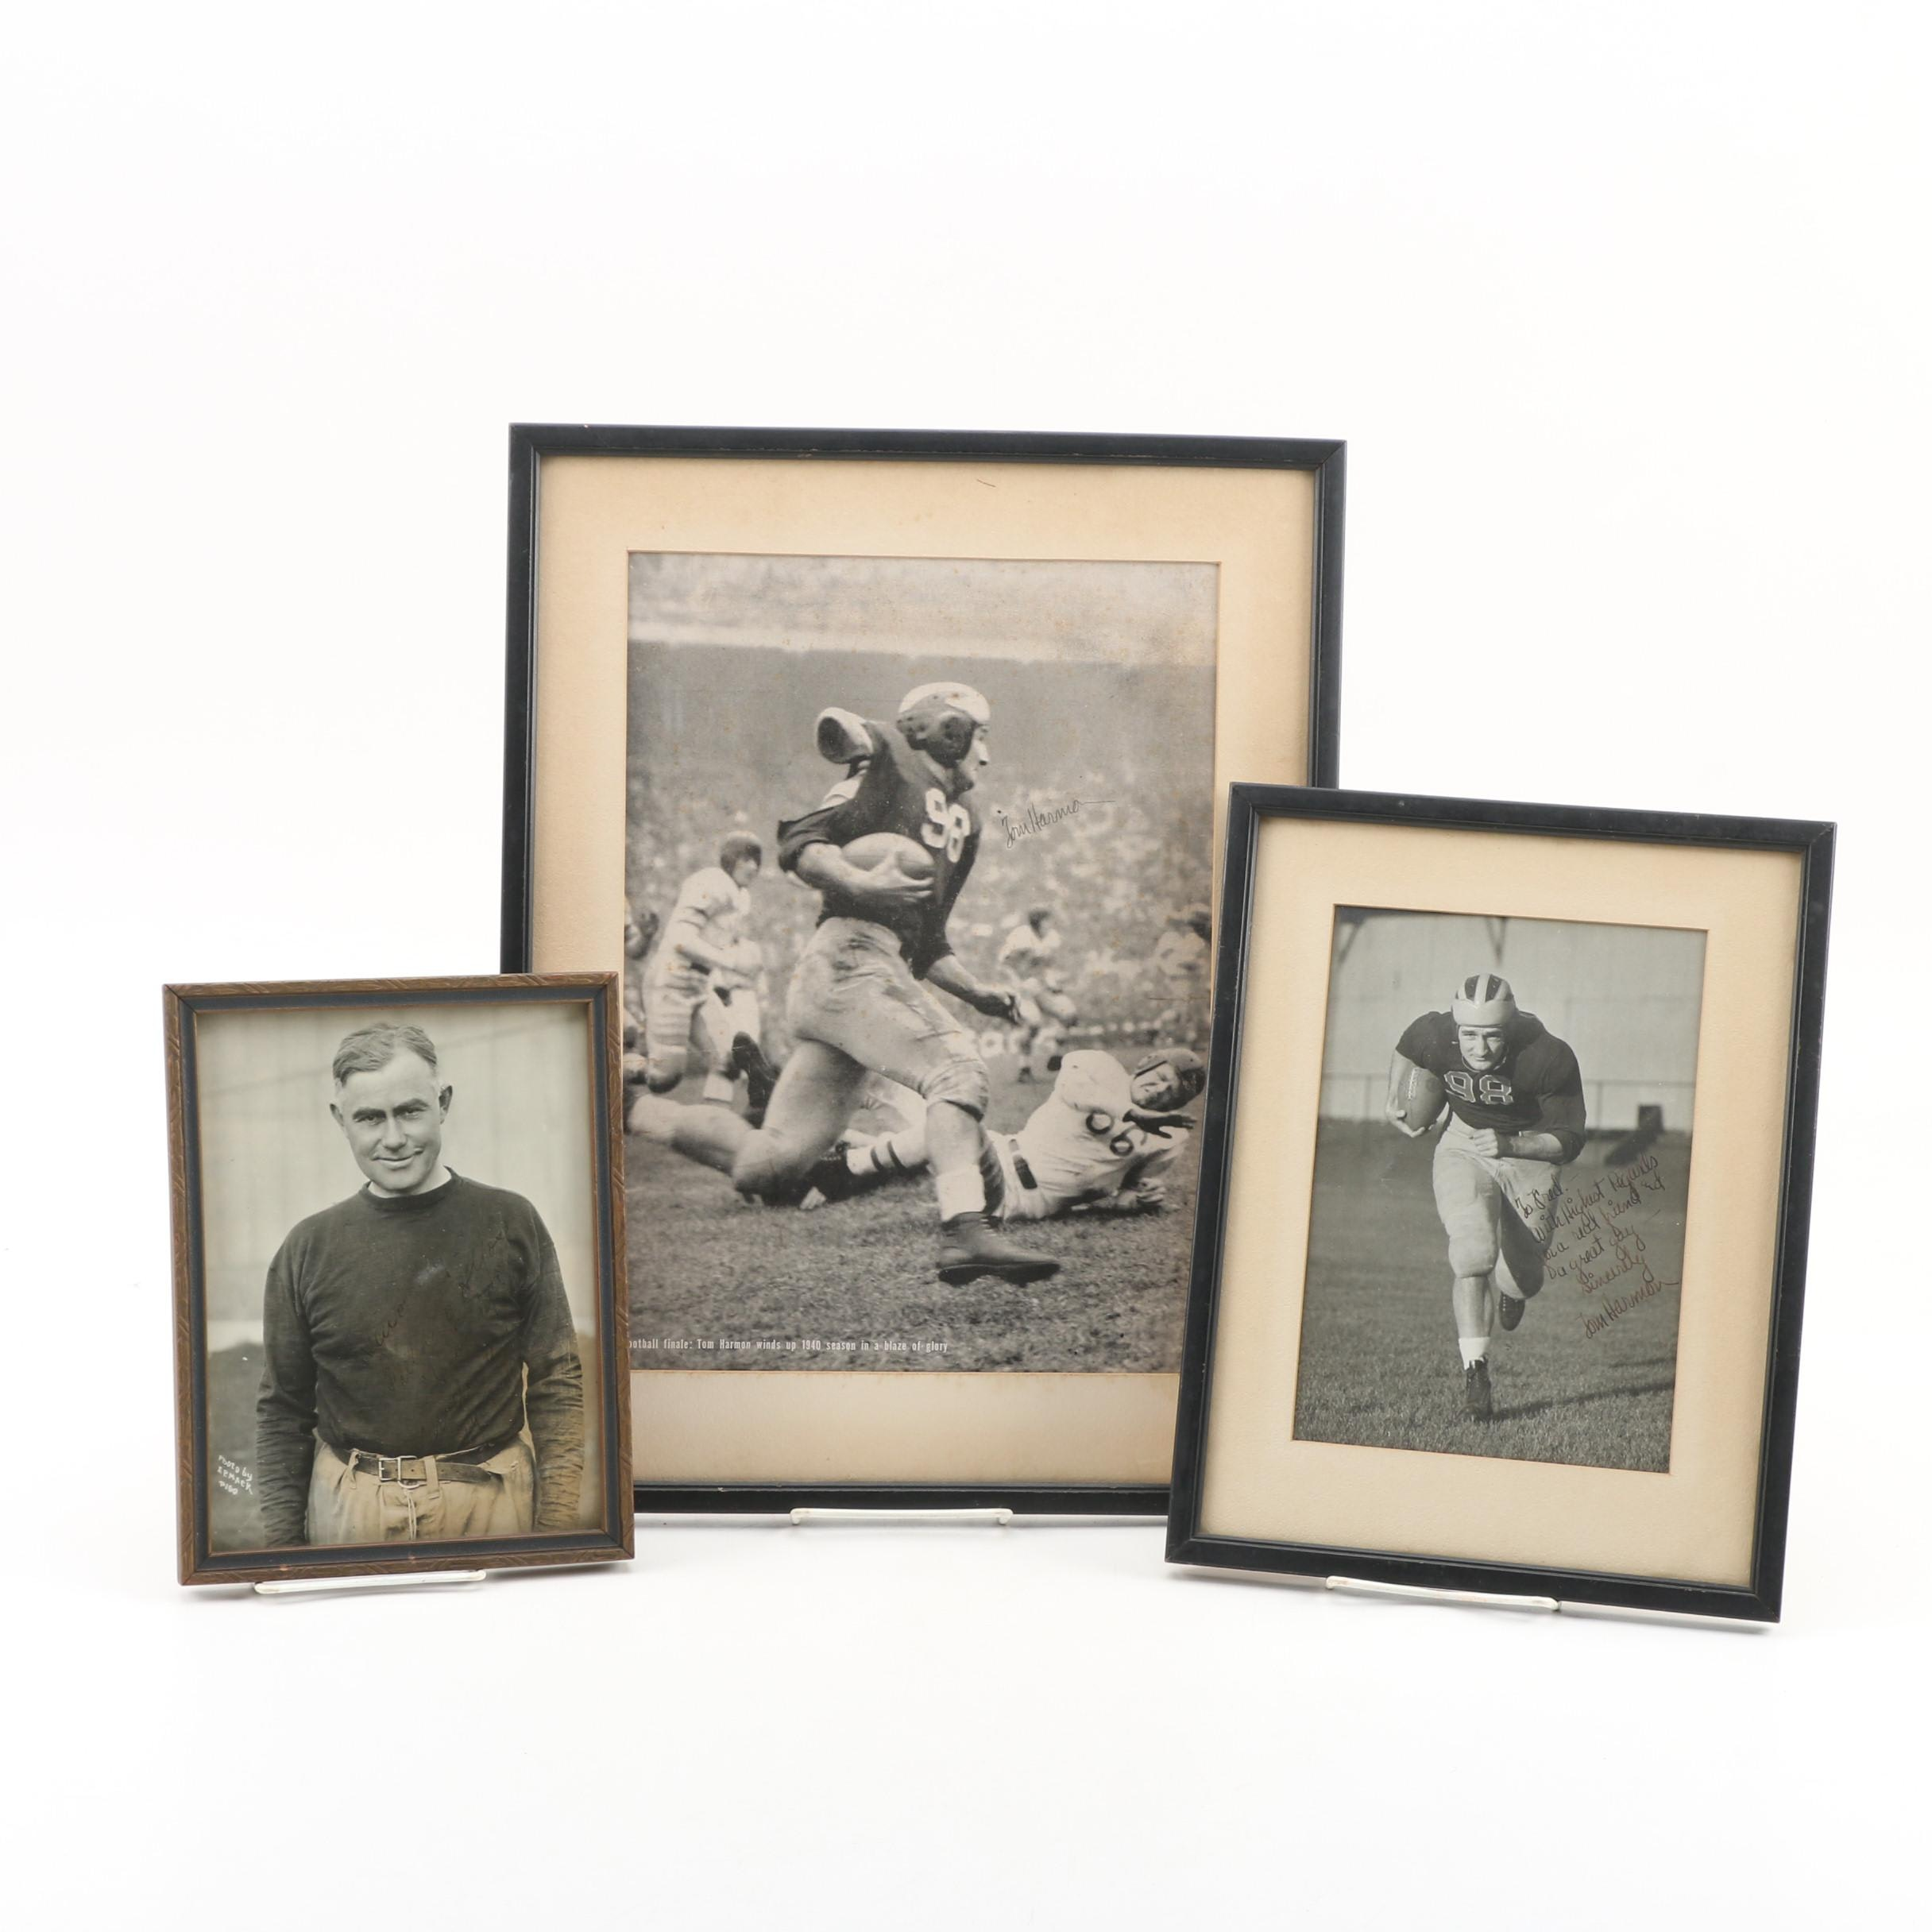 Tom Harmon and Fielding H. Yost University of Michigan Autographed Photos, 1940s